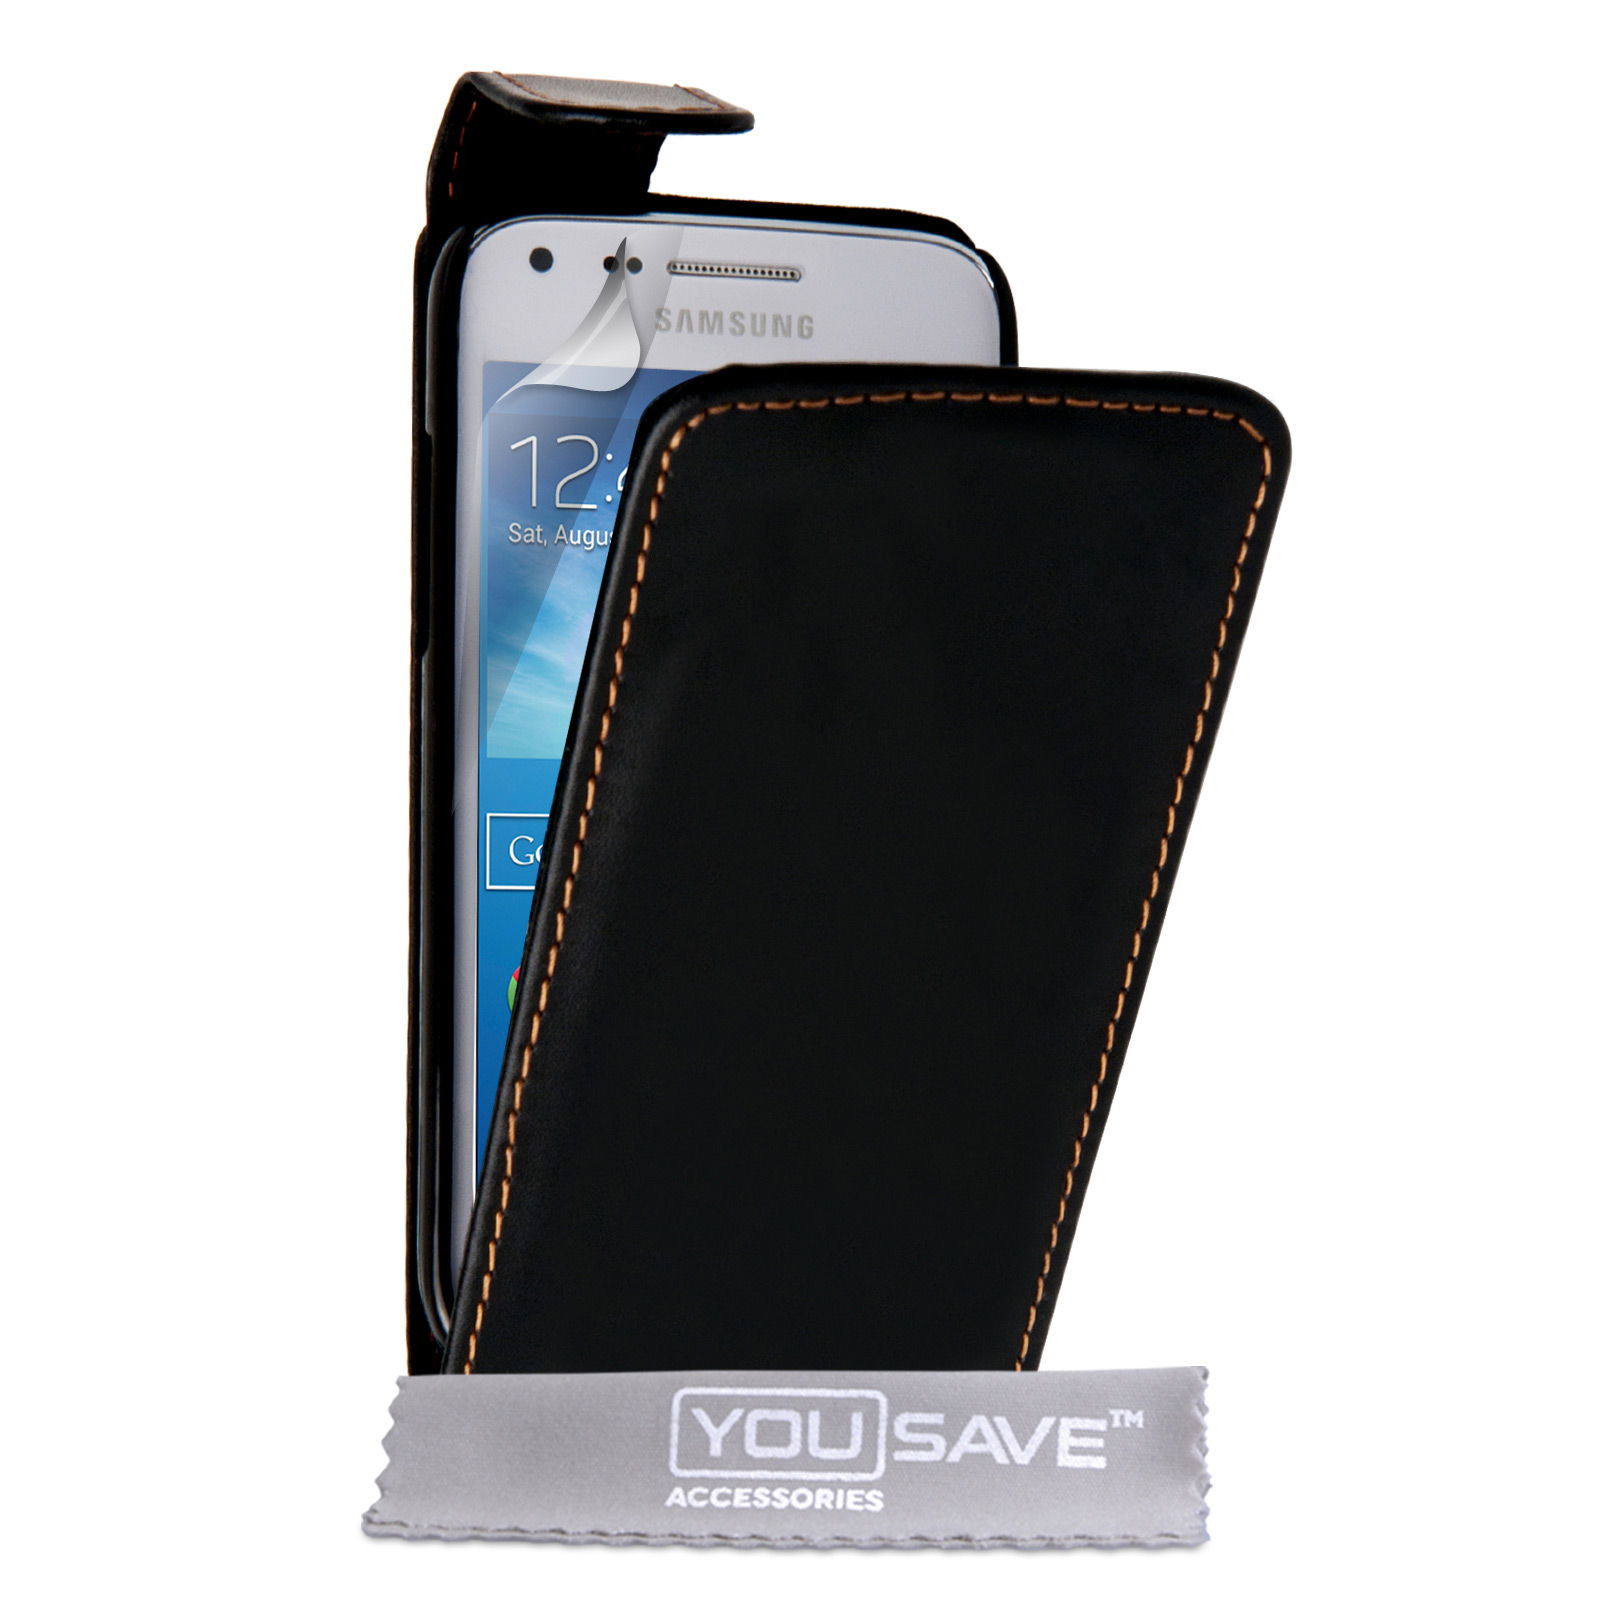 yousave accessories samsung galaxy core plus screen. Black Bedroom Furniture Sets. Home Design Ideas